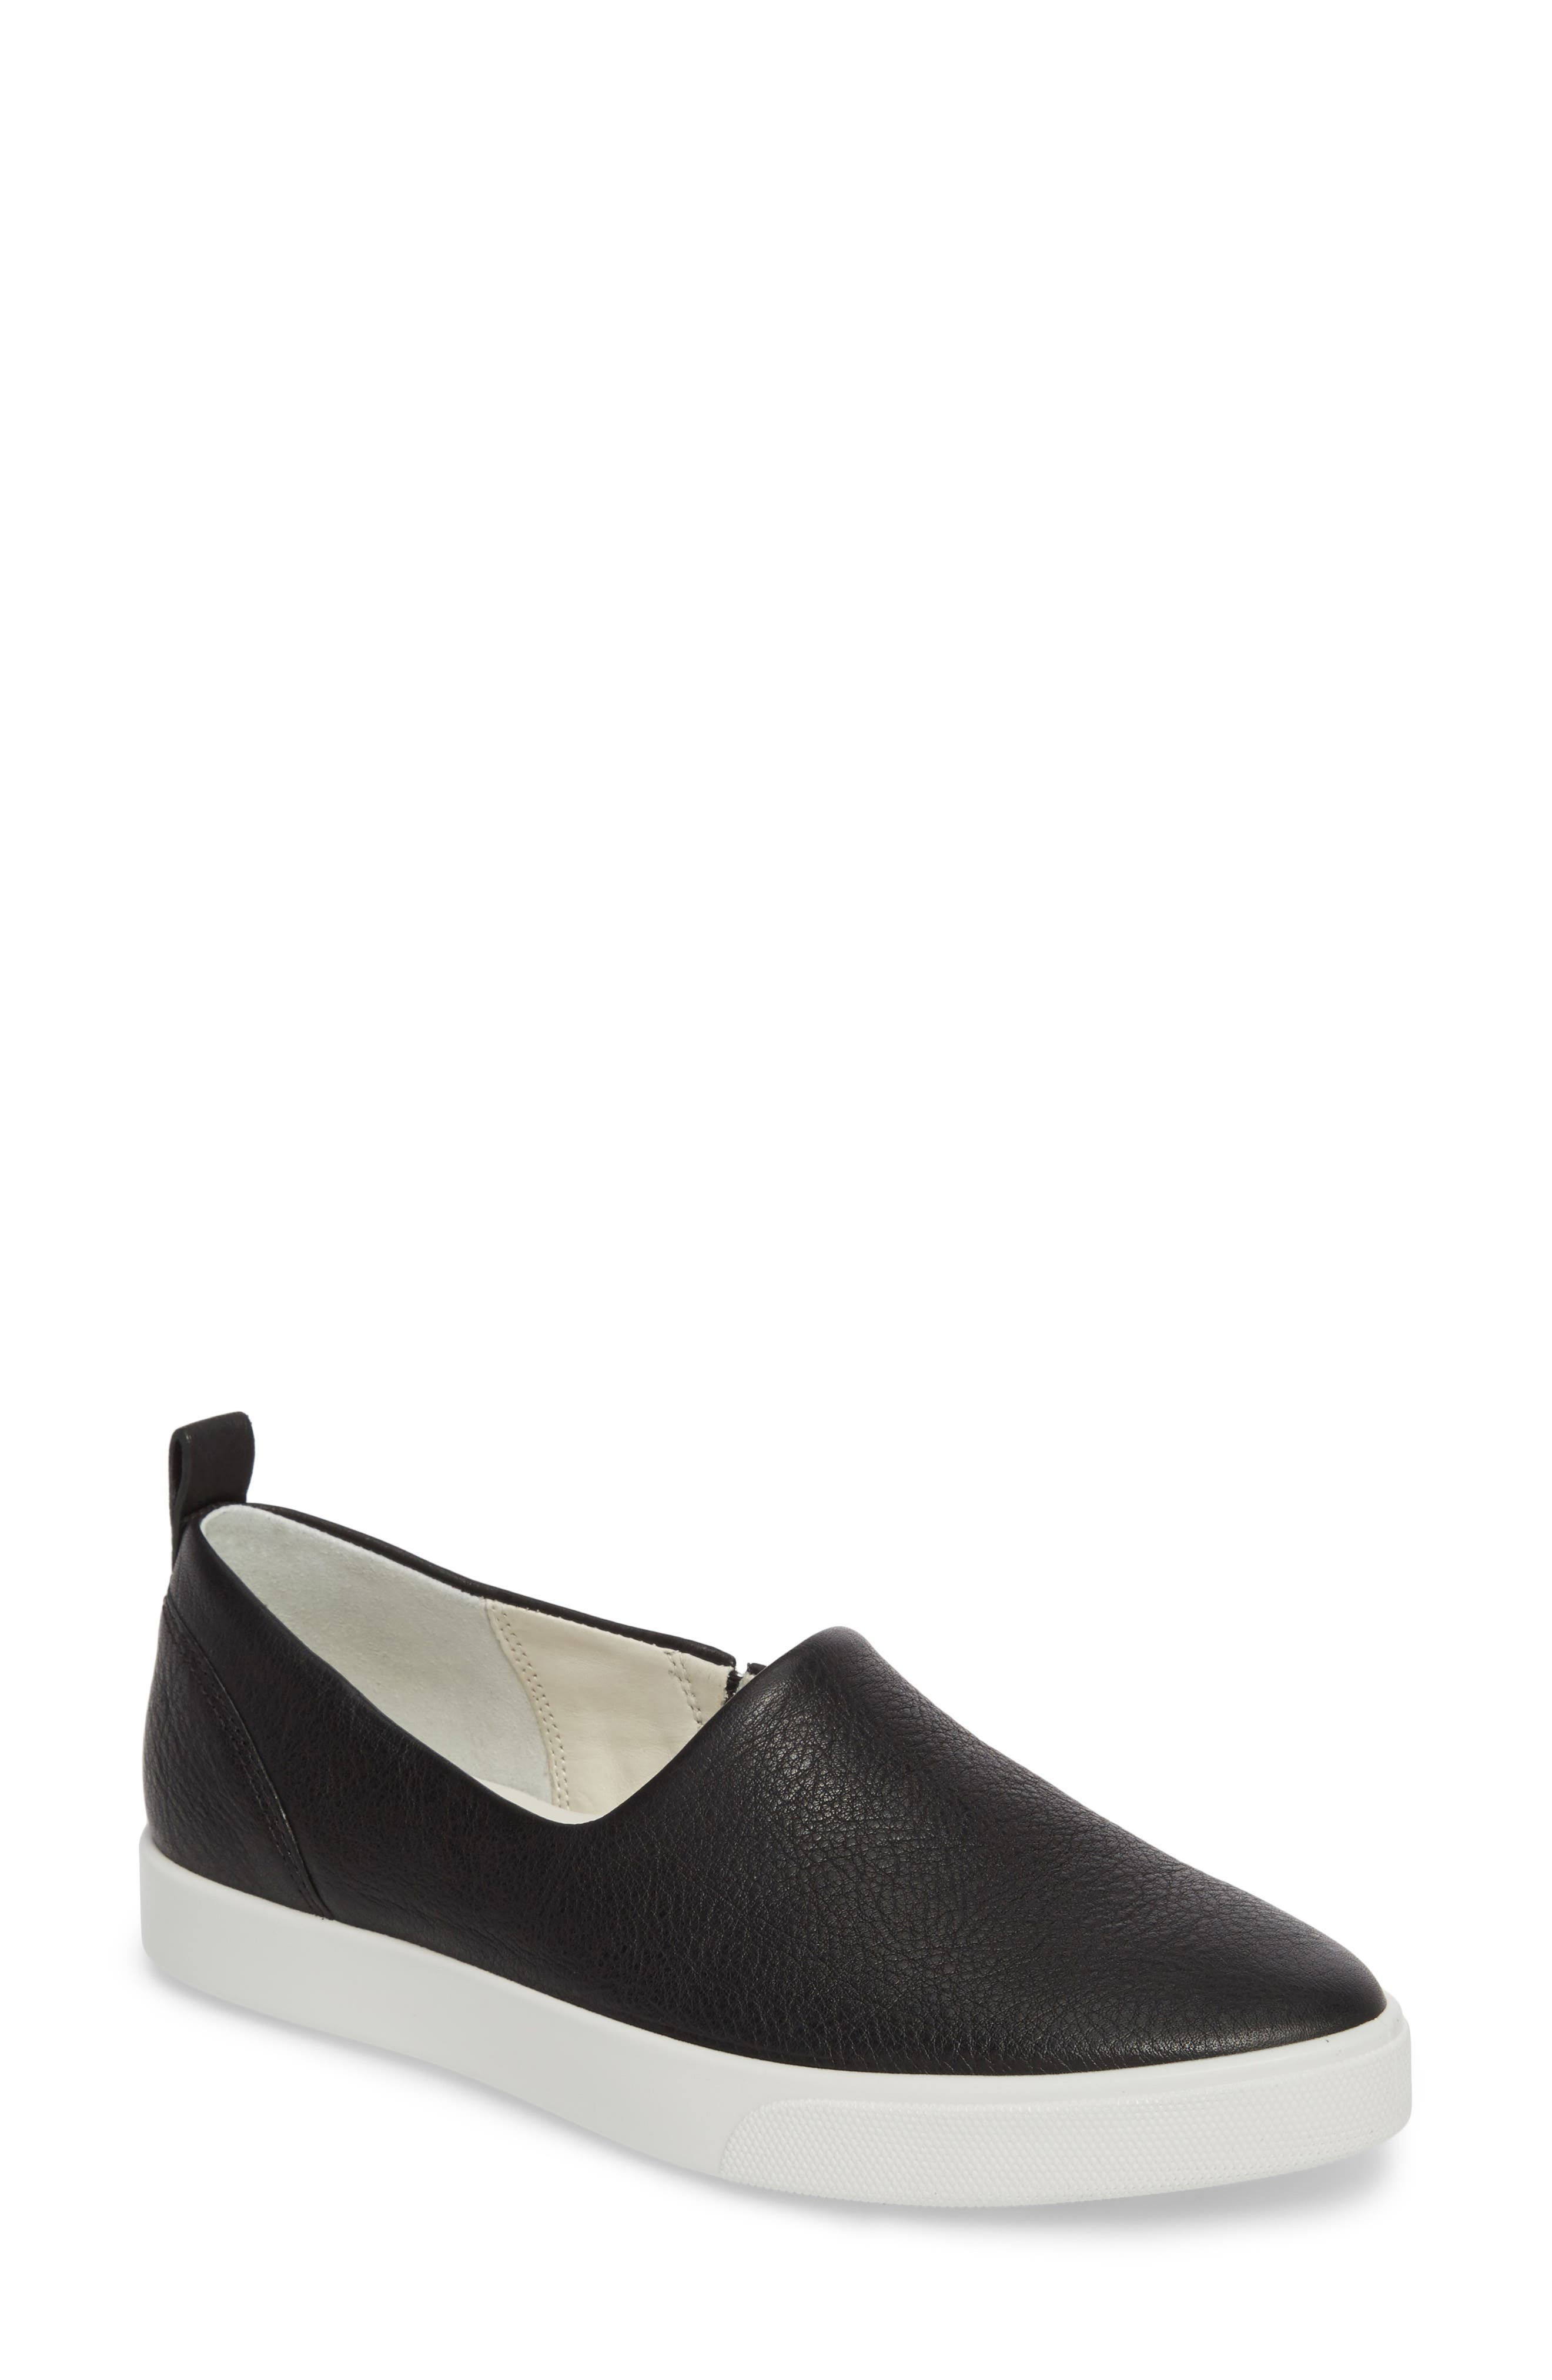 nordstrom ecco womens